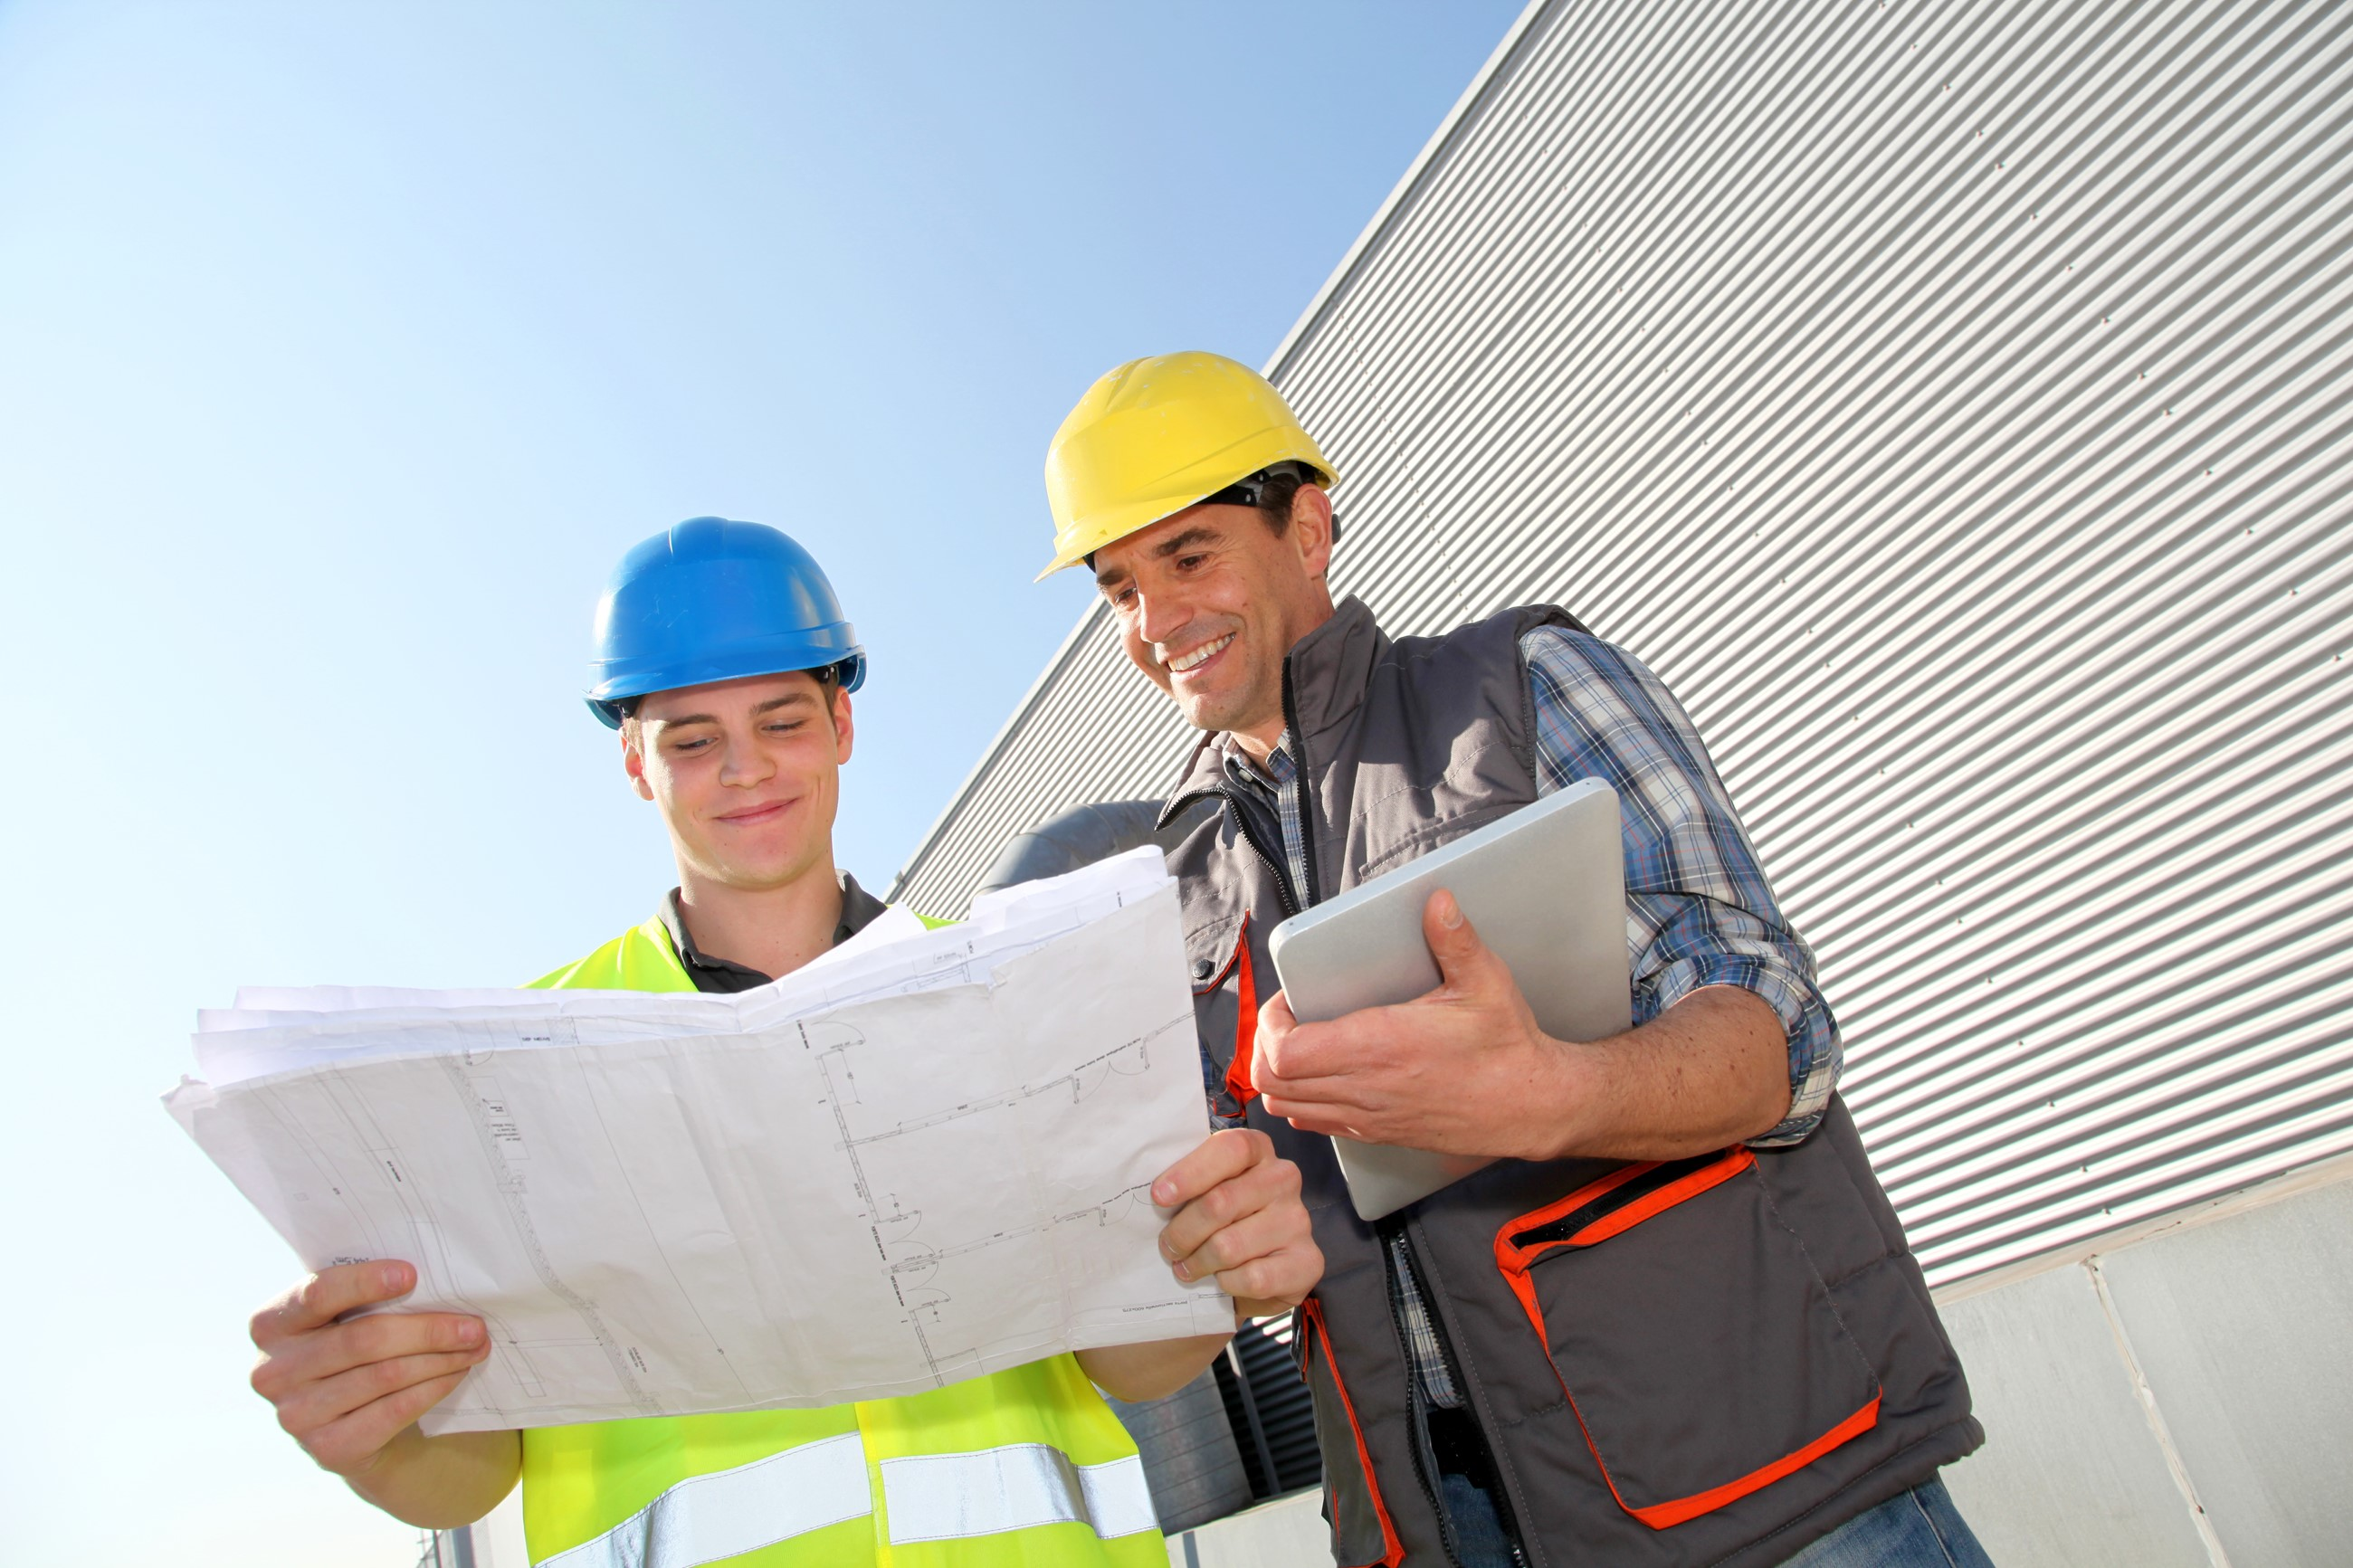 2 people in hard hats viewing planning documents